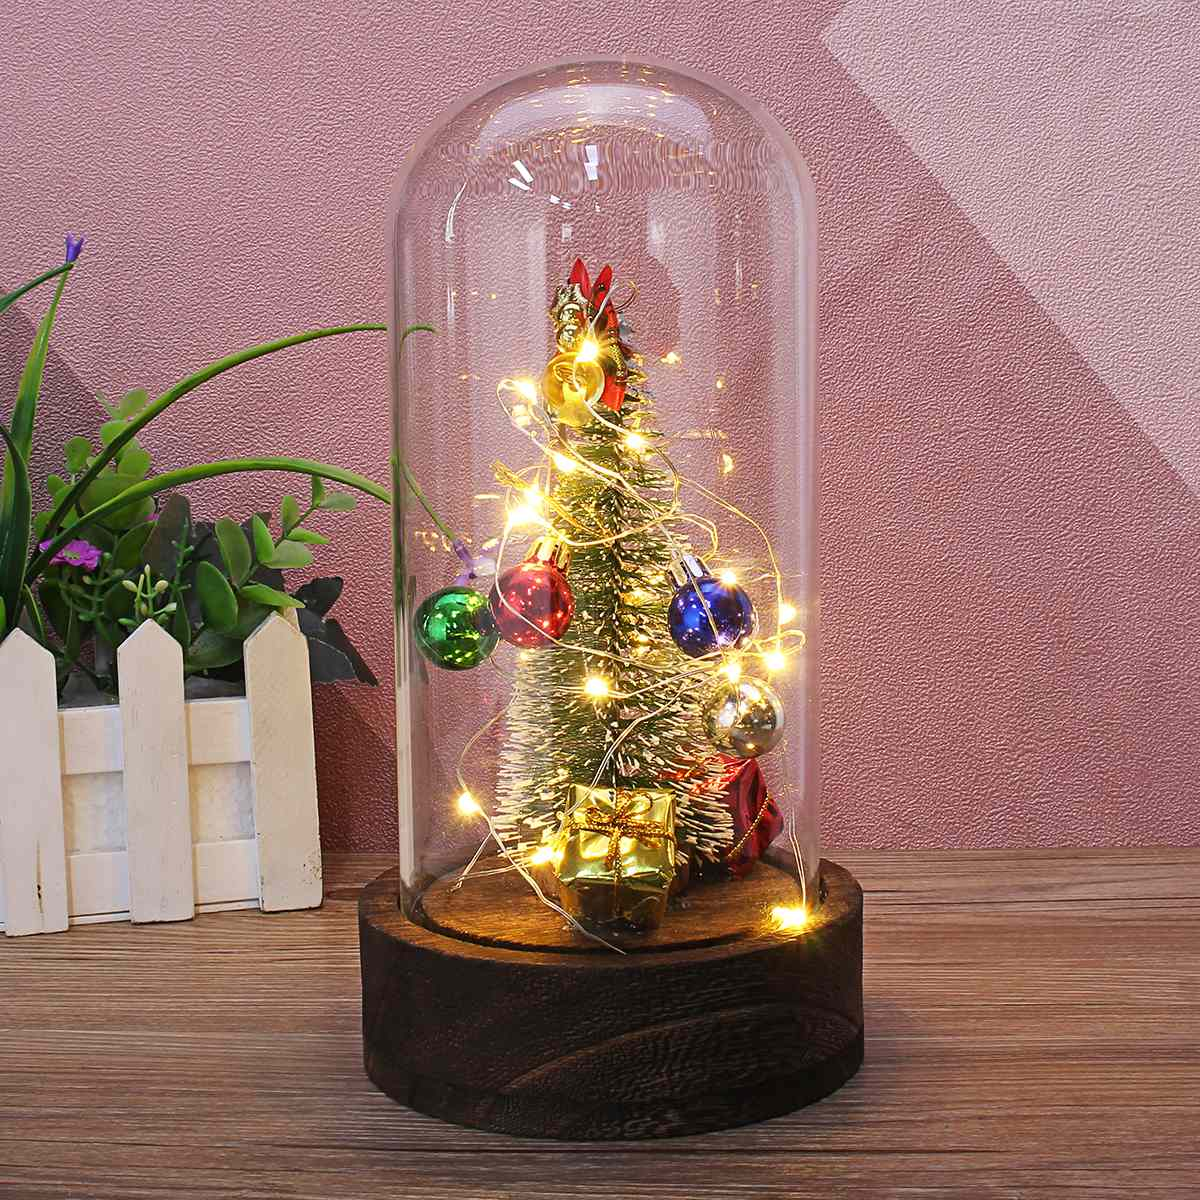 1PC Christmas Tree Jingle Bell Ornaments Gift Glass Dome Bell Jar + Fairy LED Lights Wooden Base + Music Box Song For Home Decor туалетная бумага familia plus магический цветок двухслойная цвет белый 4 шт